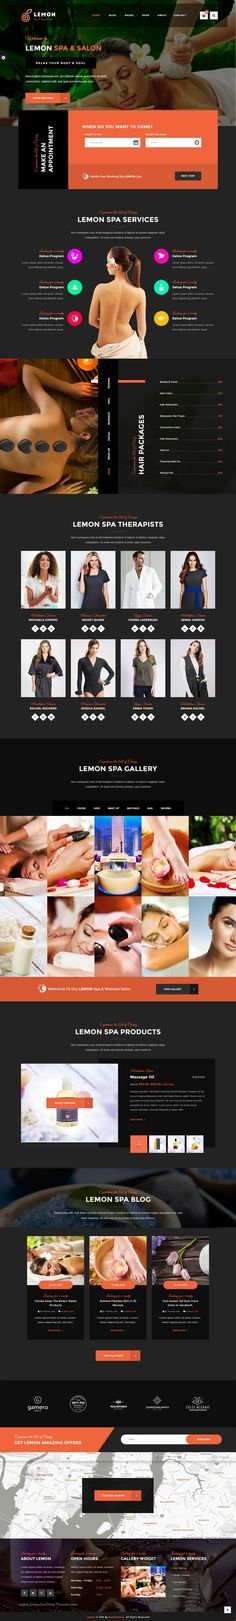 Lemon is a minimal and modern design #WordPress #template for #spa and beauty #salon responsive website with 4 stunning homepage layouts download now➯ https://themeforest.net/item/lemon-spa-beauty-responsive-multipurpose-wordpress-theme/16642390?ref=Datasata